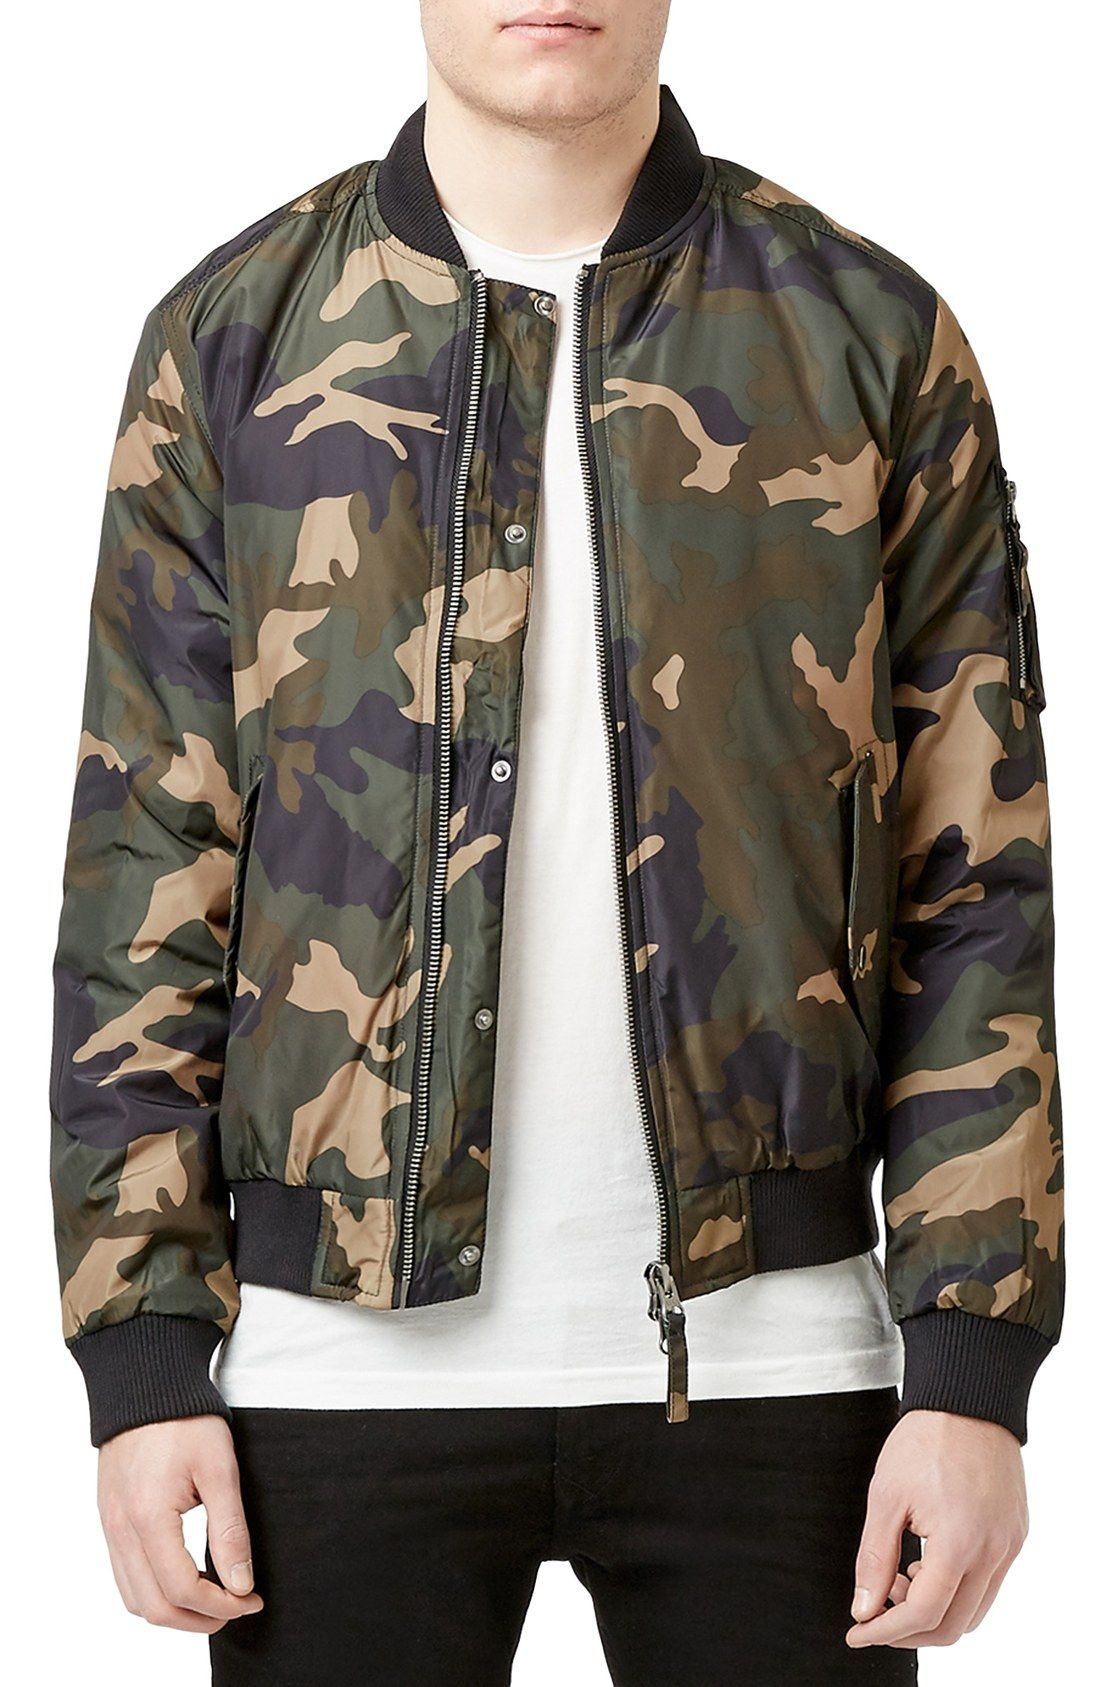 Bomber Jackets For Men 30 Ways To Wear A Bomber Jacket Camo Bomber Jacket Mens Bomber Jacket Outfit Bomber Jacket [ 1687 x 1100 Pixel ]